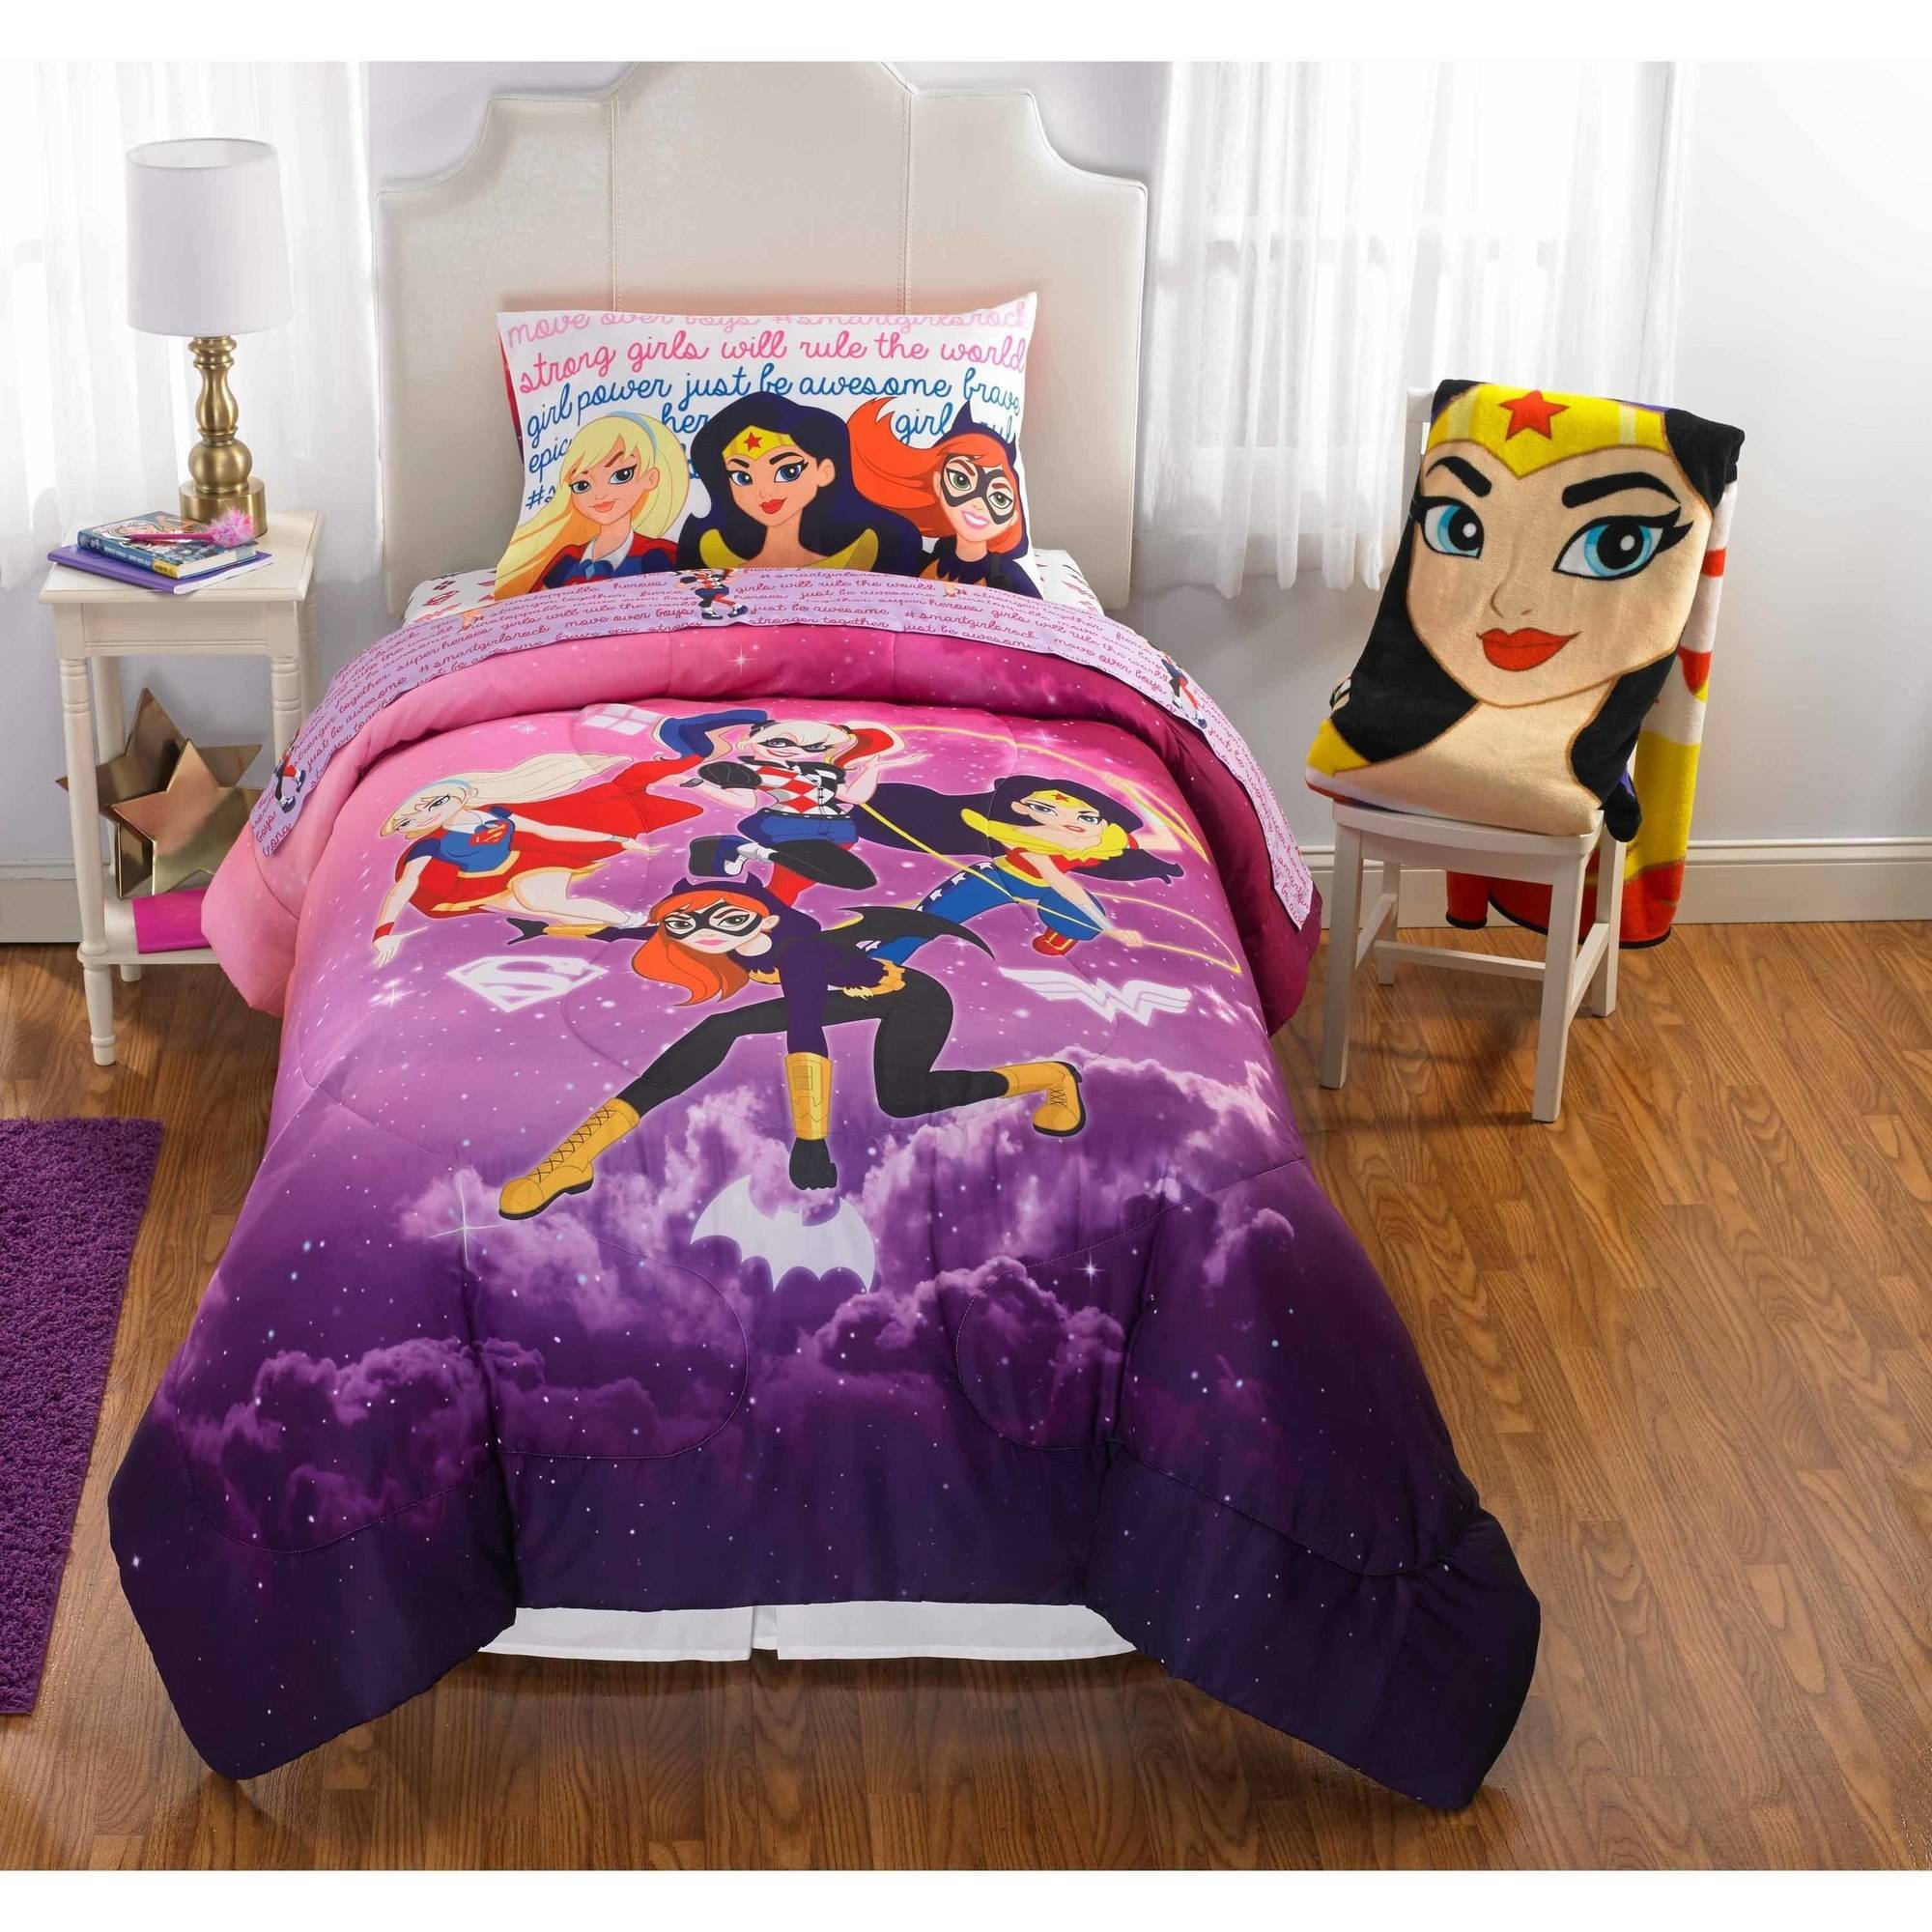 matching of bedroom in duvet size covers full cover bedspreads floralh show bedding linen various horse and curtain sizes girls sets with new curtains